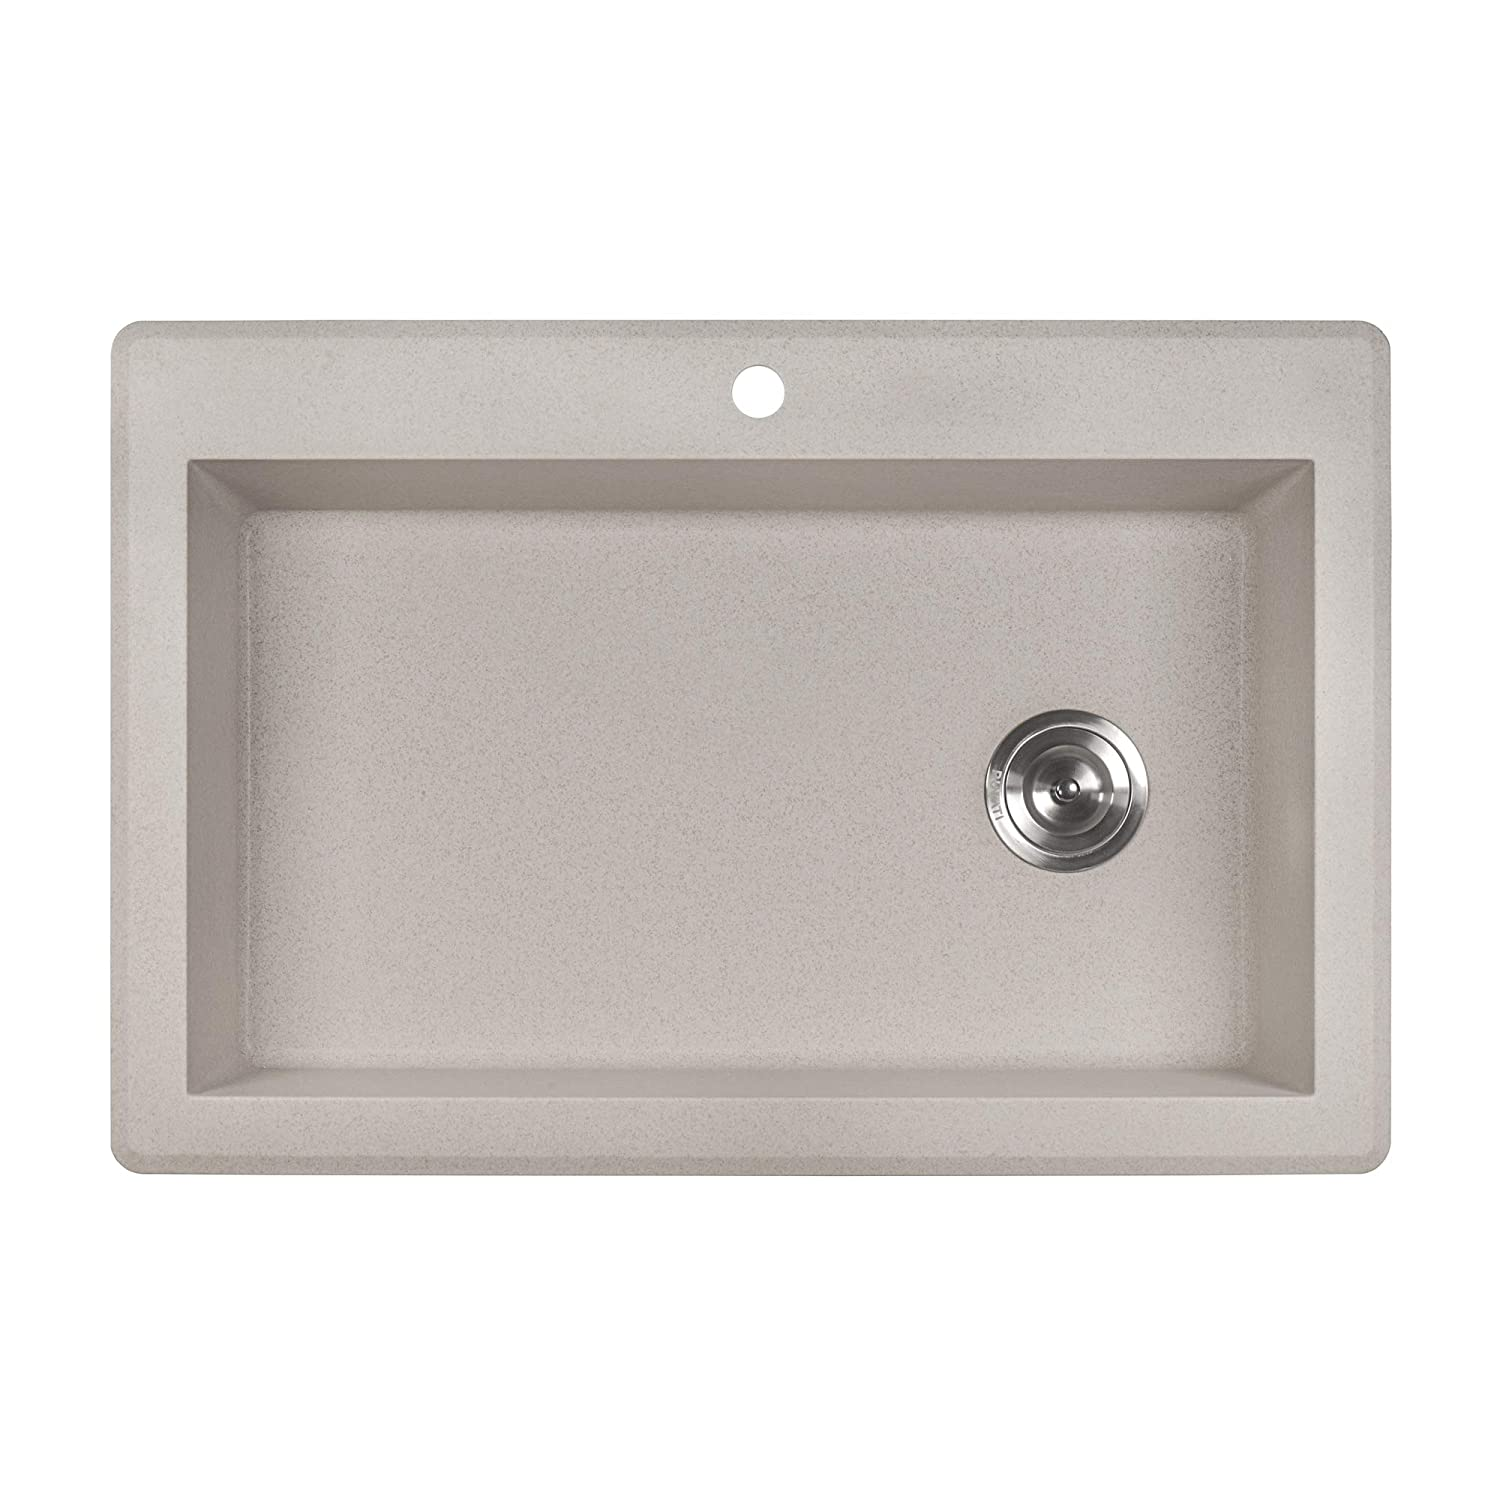 Ruvati 33 x 22 inch Dual-Mount Granite Composite Single Bowl Kitchen Sink -  Caribbean Sand - RVG1033CS